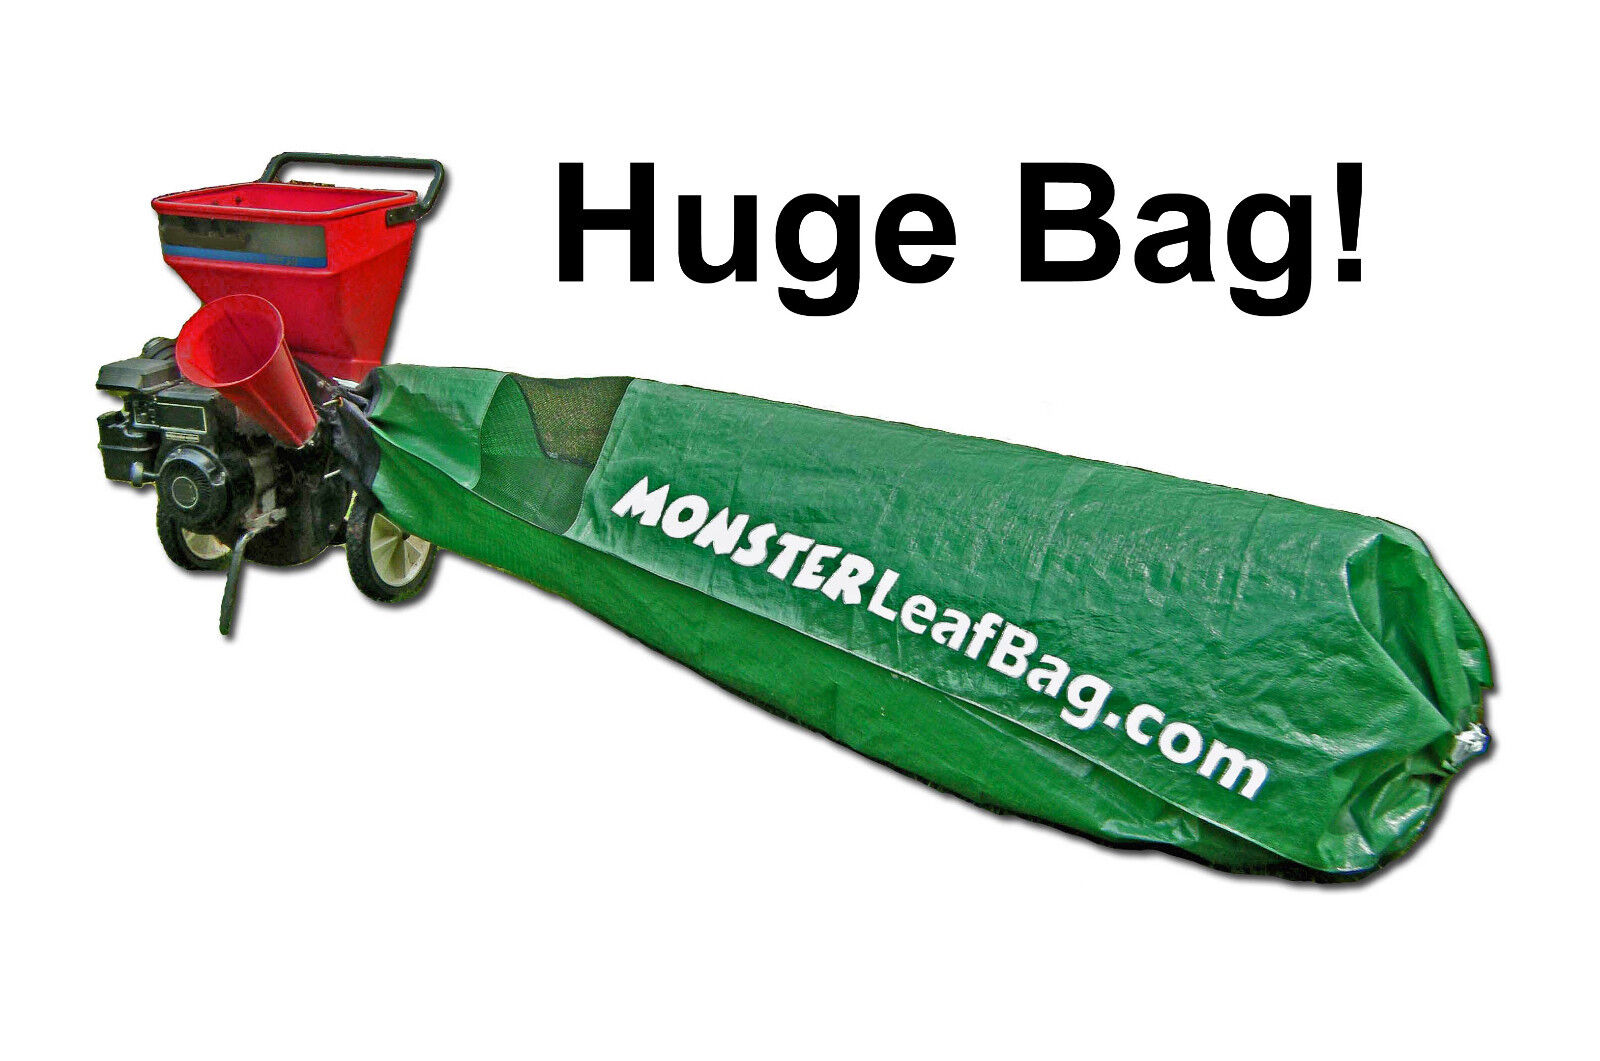 Lawn Mowers Riding Bags